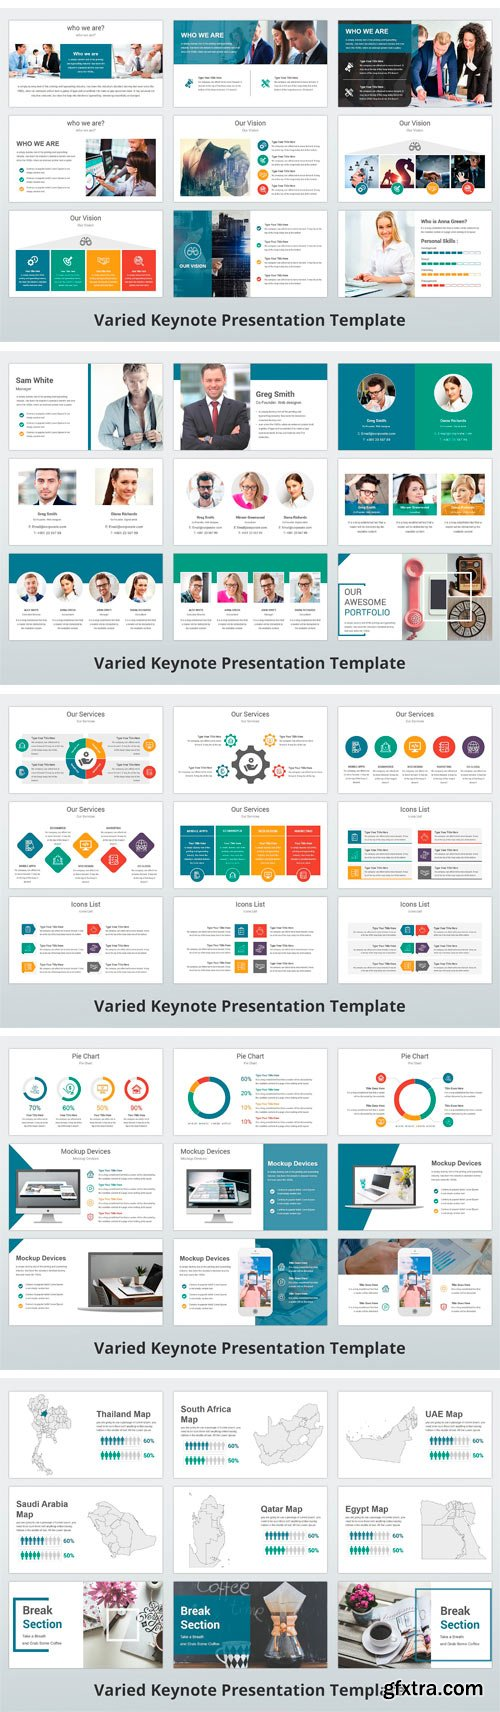 CM - Varied Keynote Template 2392967